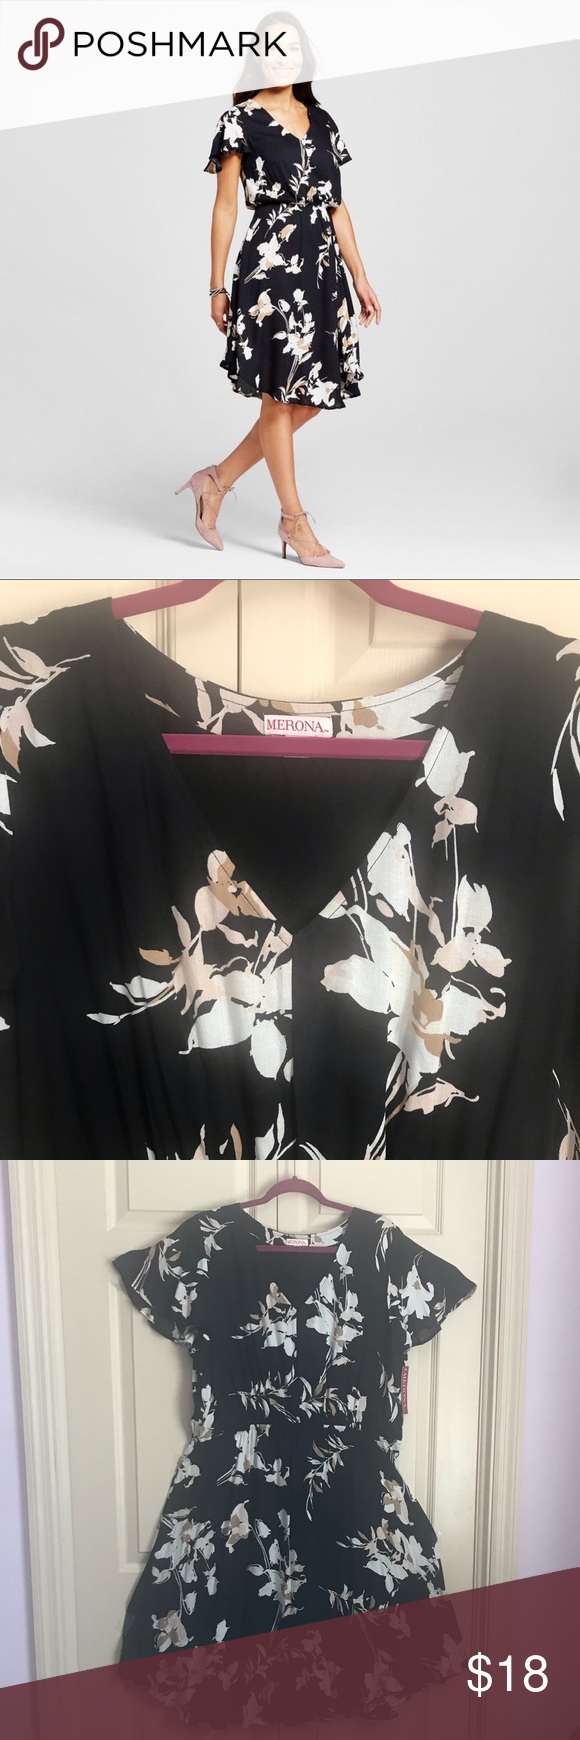 Brand New Black Floral Dress From Target Floral Dress Black Floral Dress Black Floral [ 1740 x 580 Pixel ]